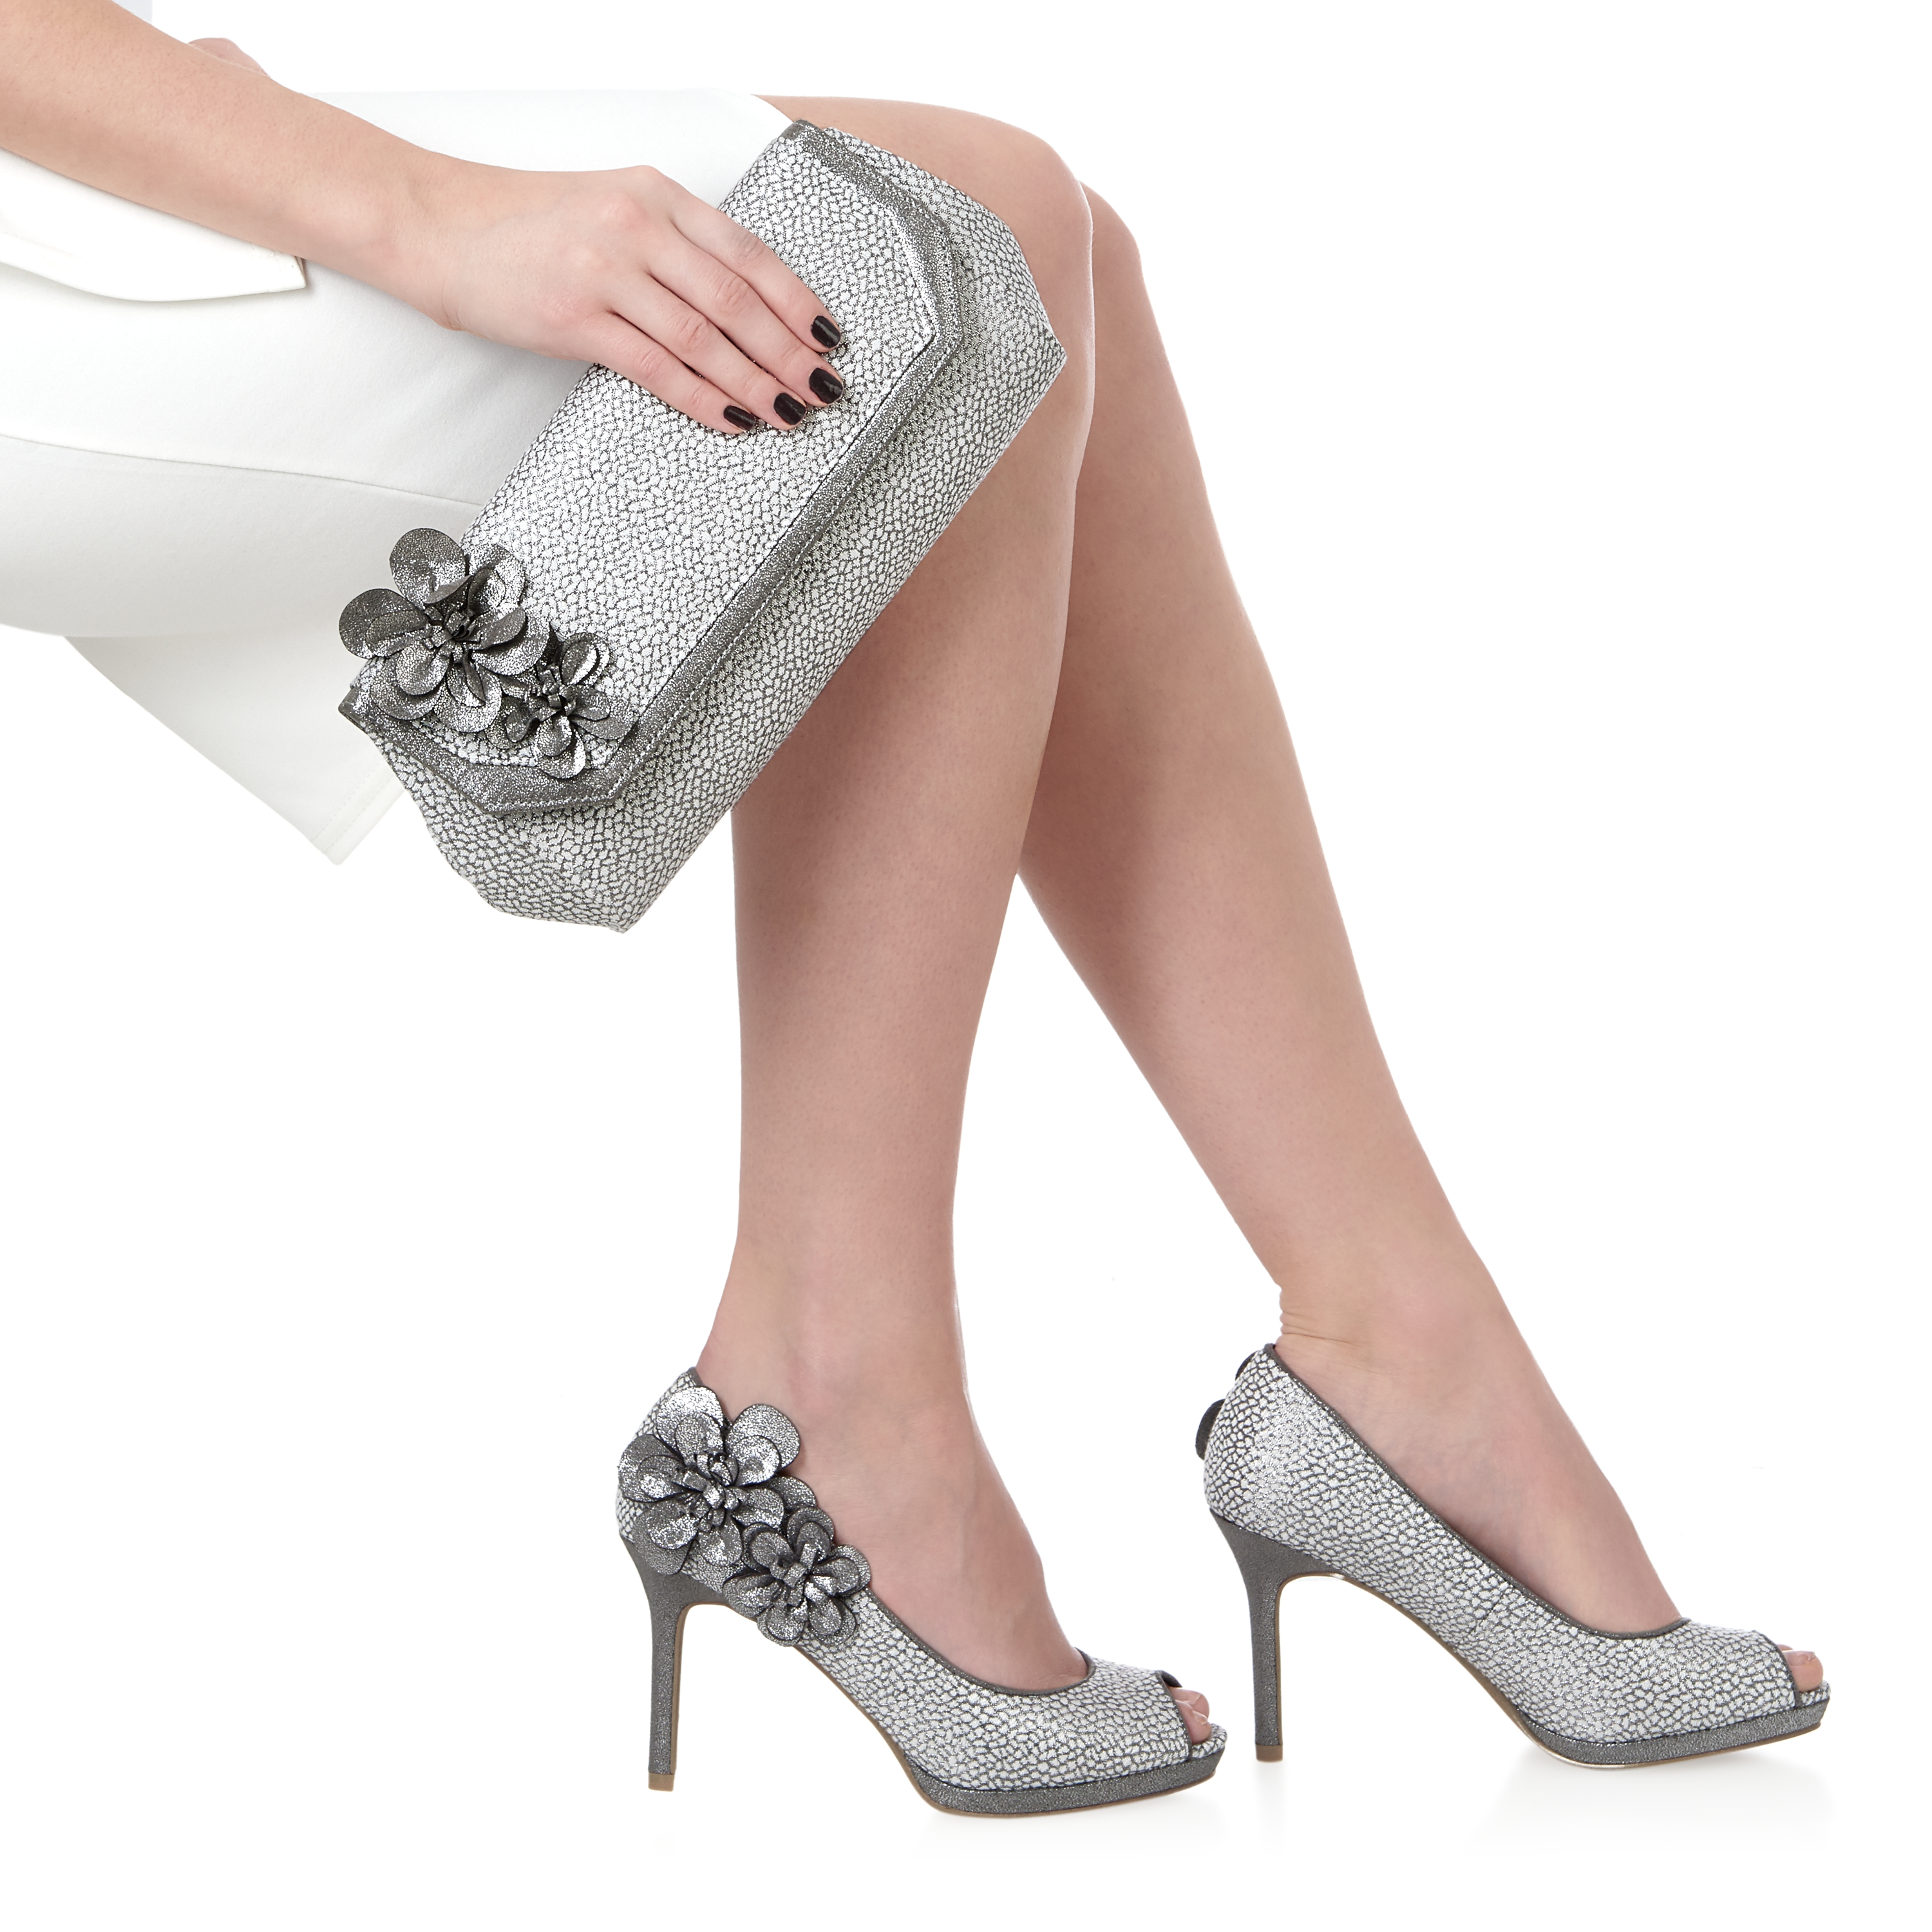 Silver Peep Toe Shoes And Matching Bag